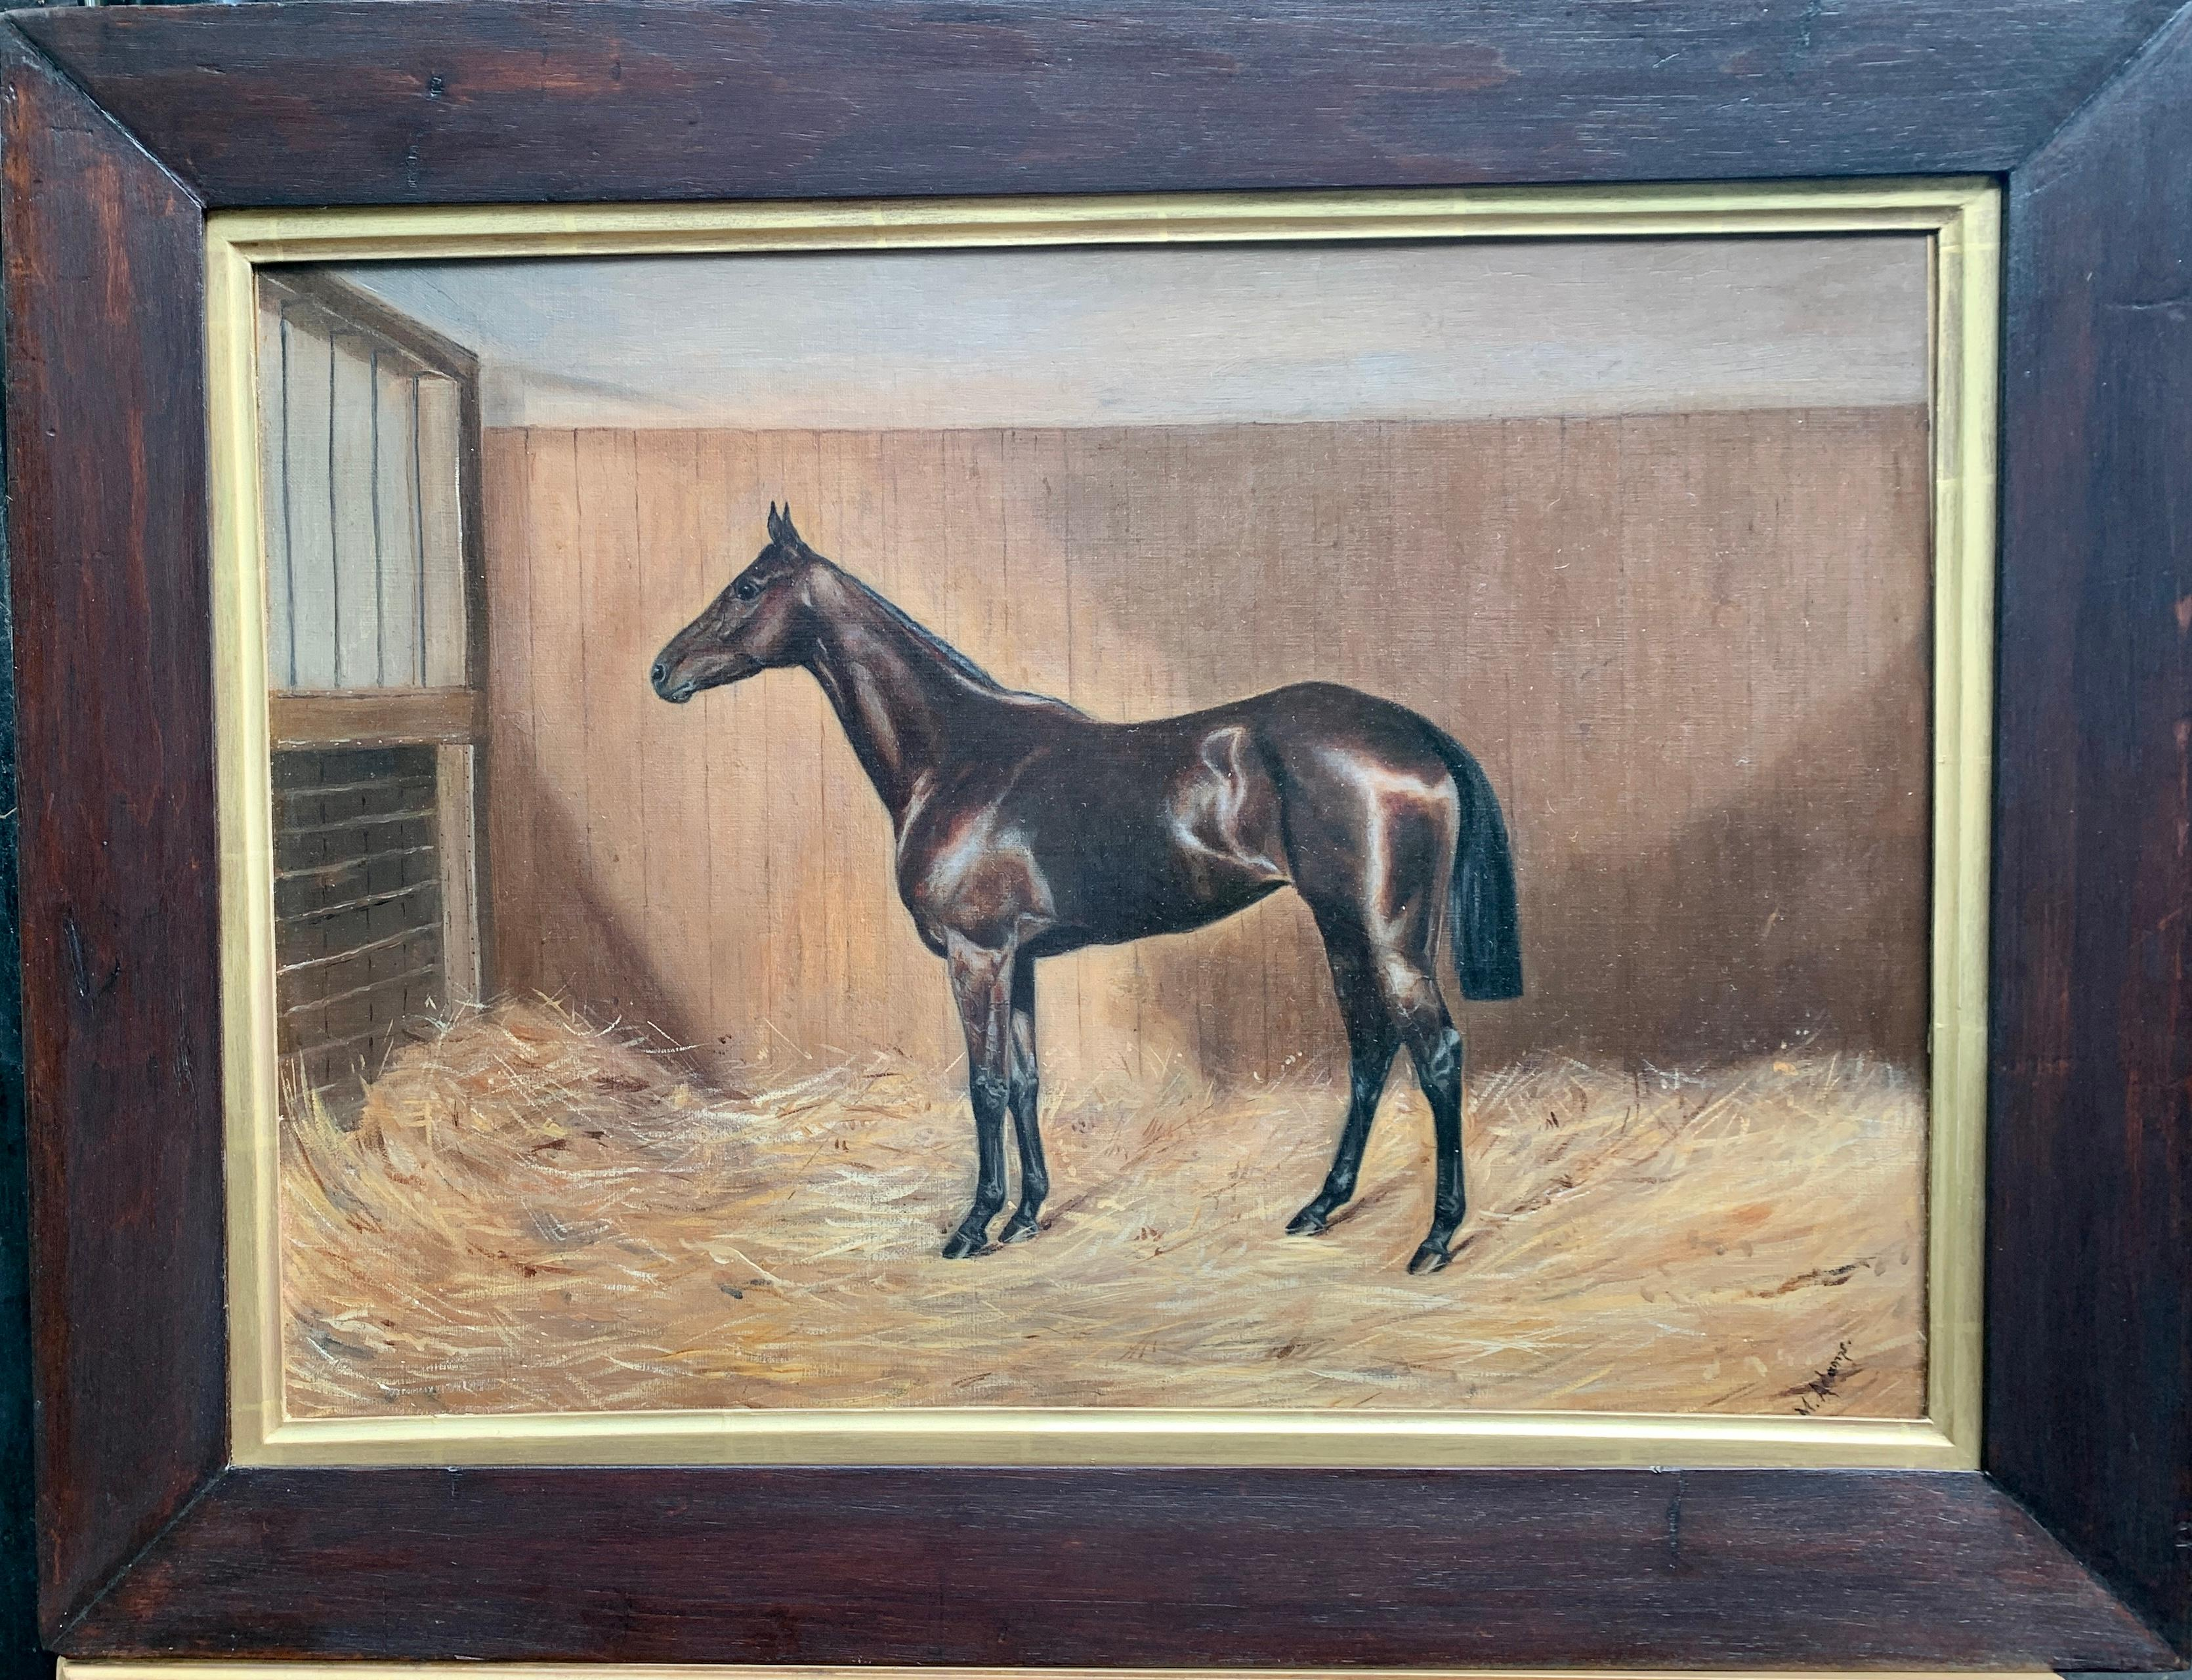 19th century English Antique Victorian horse in a stable barn